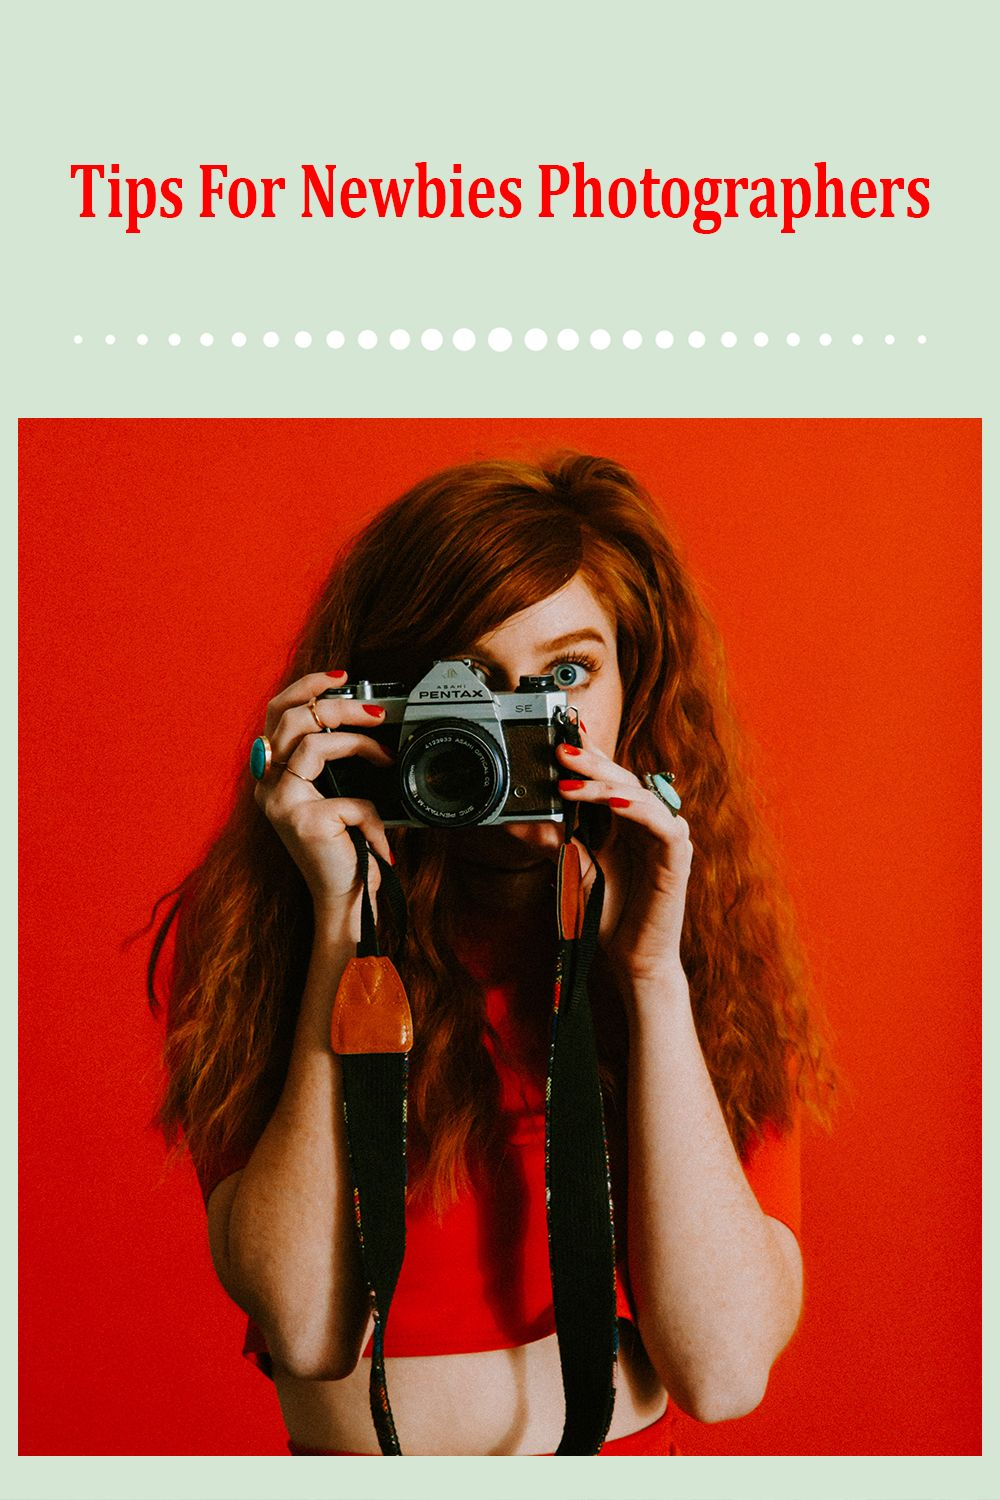 It's possible to get very nice photos with an inexpensive point and shoot. See these examples on Flickr. The more photos you take, the more you'll know about what kind of camera to get when it's time to upgrade. #photographytips #tips #photographer #tipsforphotographer #photographyskills